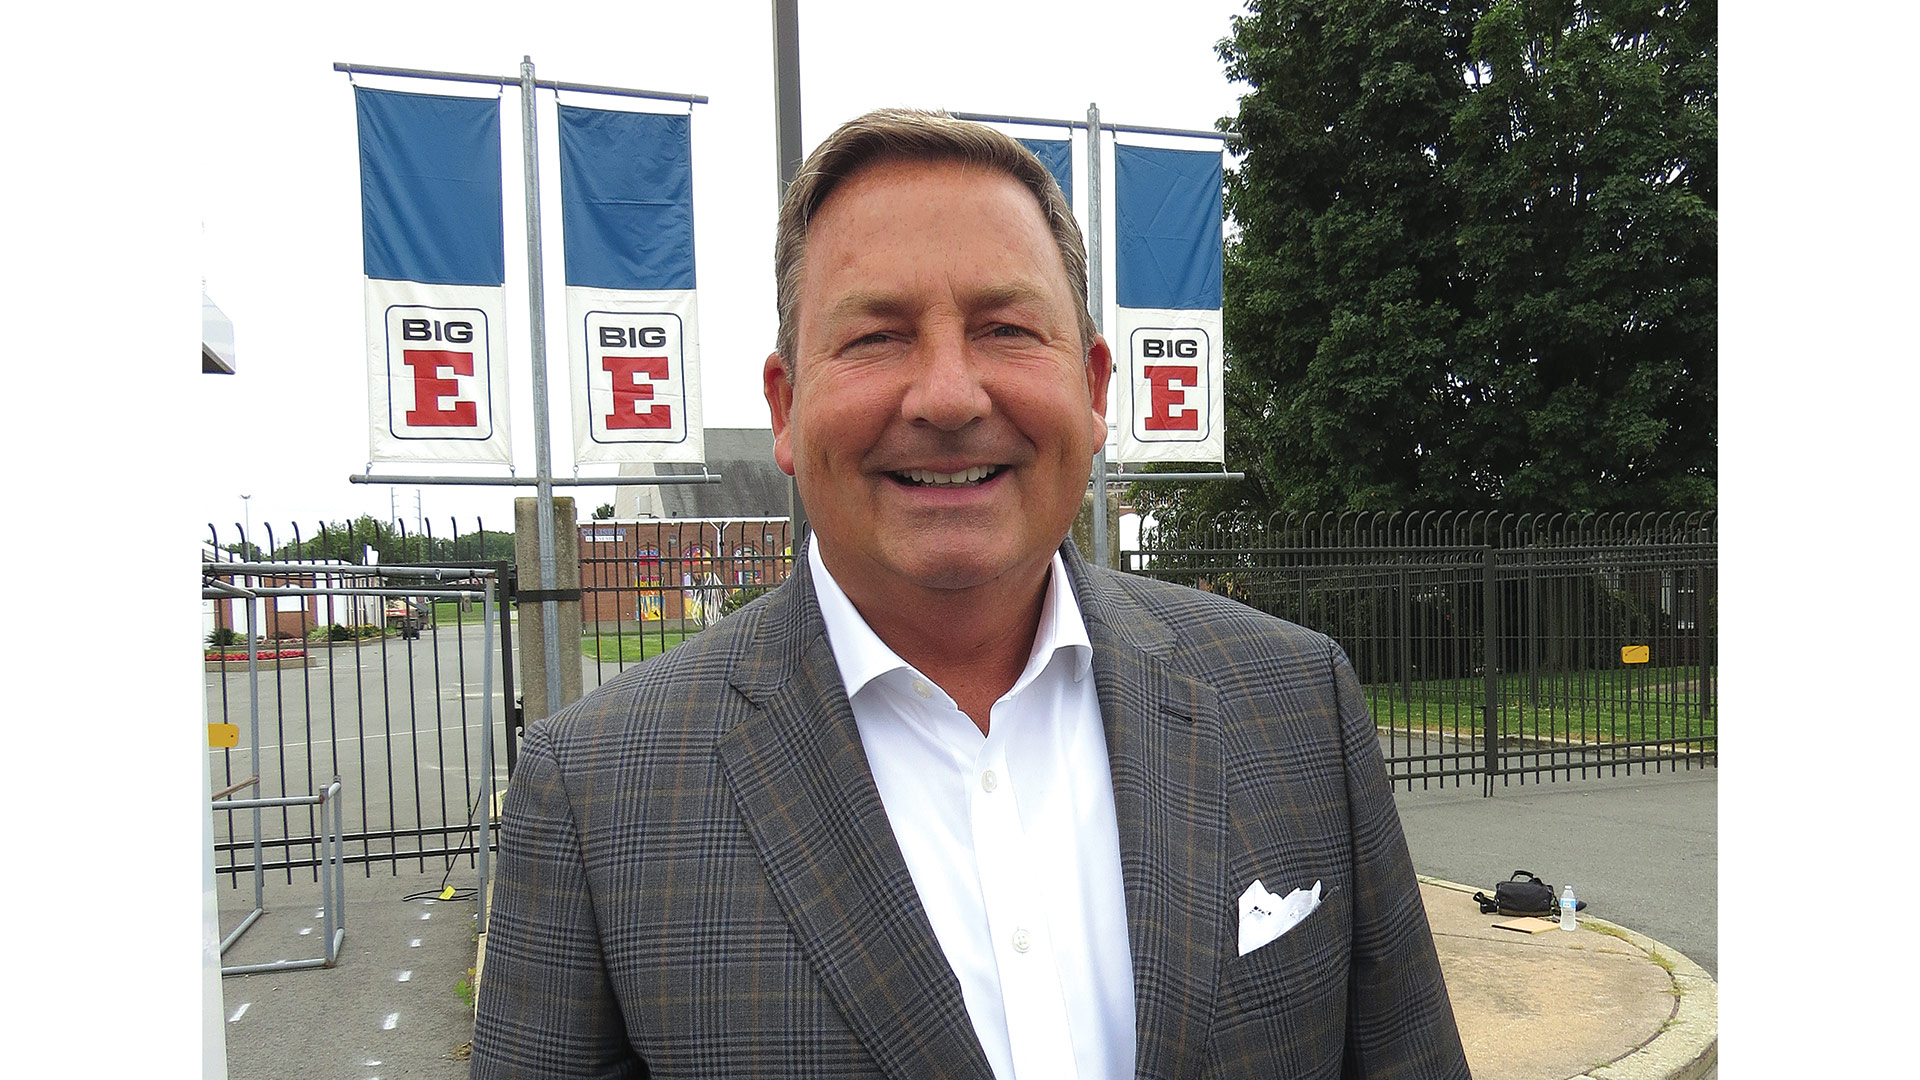 Eugene Cassidy, president and CEO of the Big E